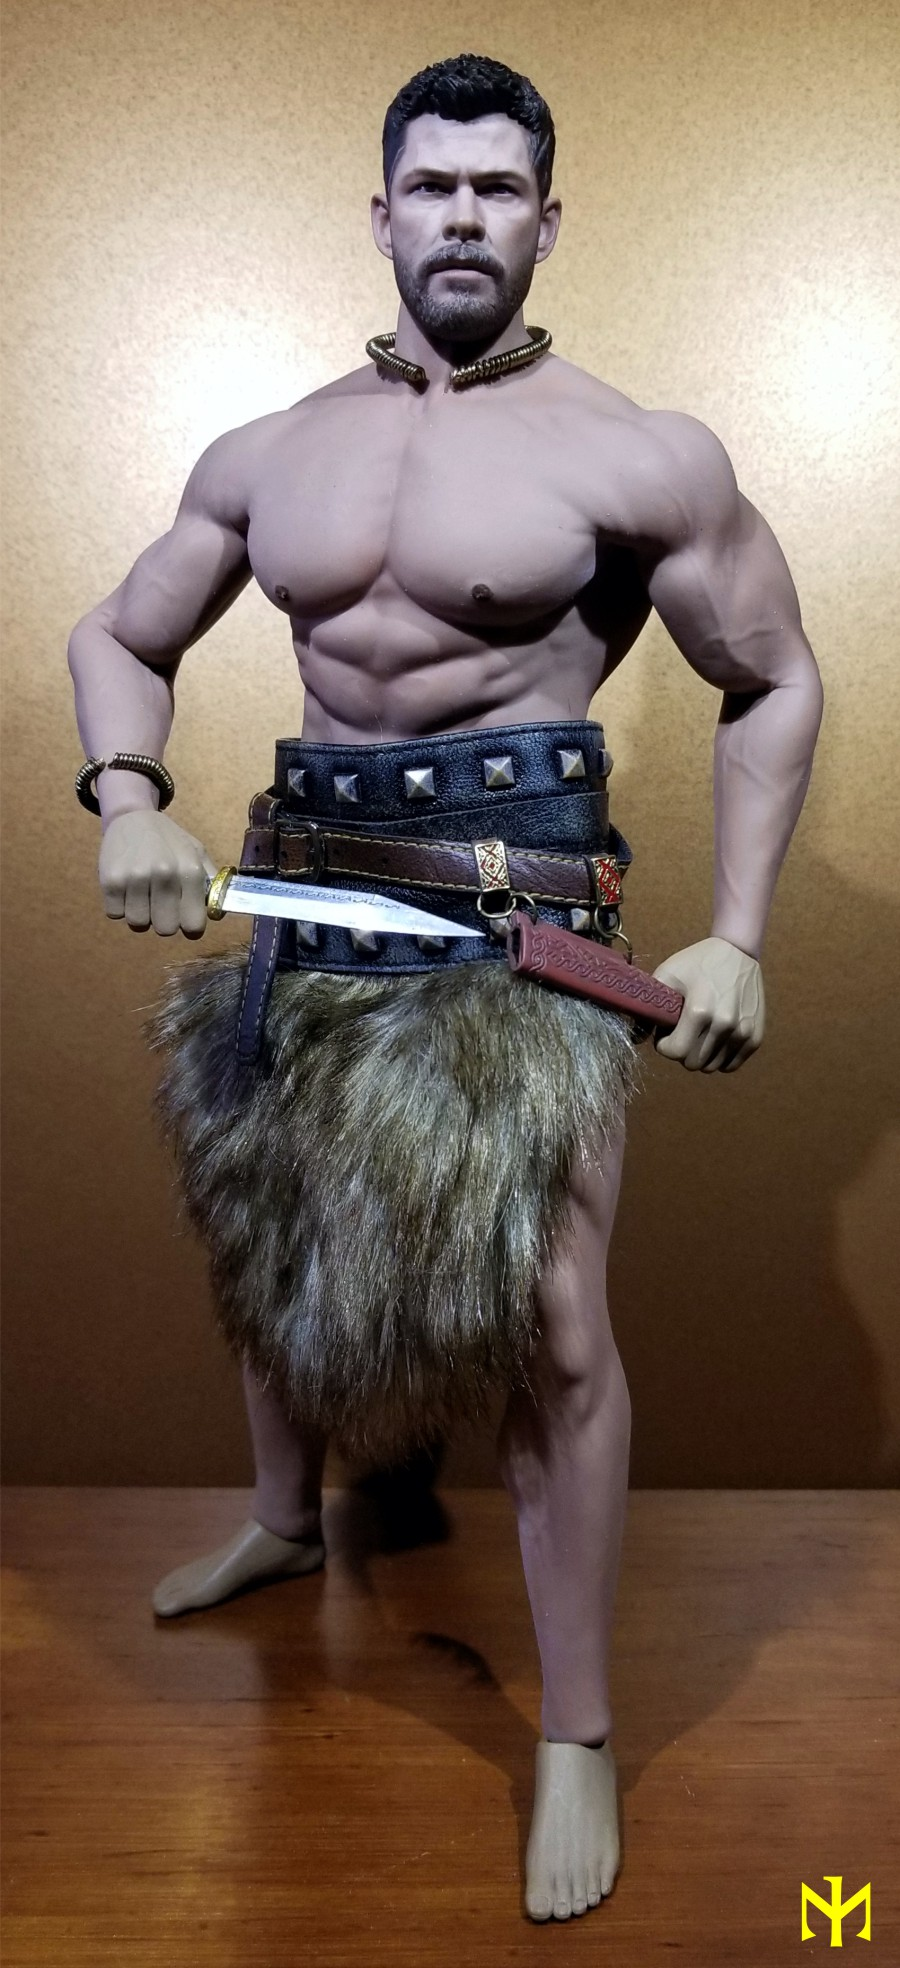 Conanesque: A Fantasy Warrior Kitbash (update 5: February 2020) Viking51